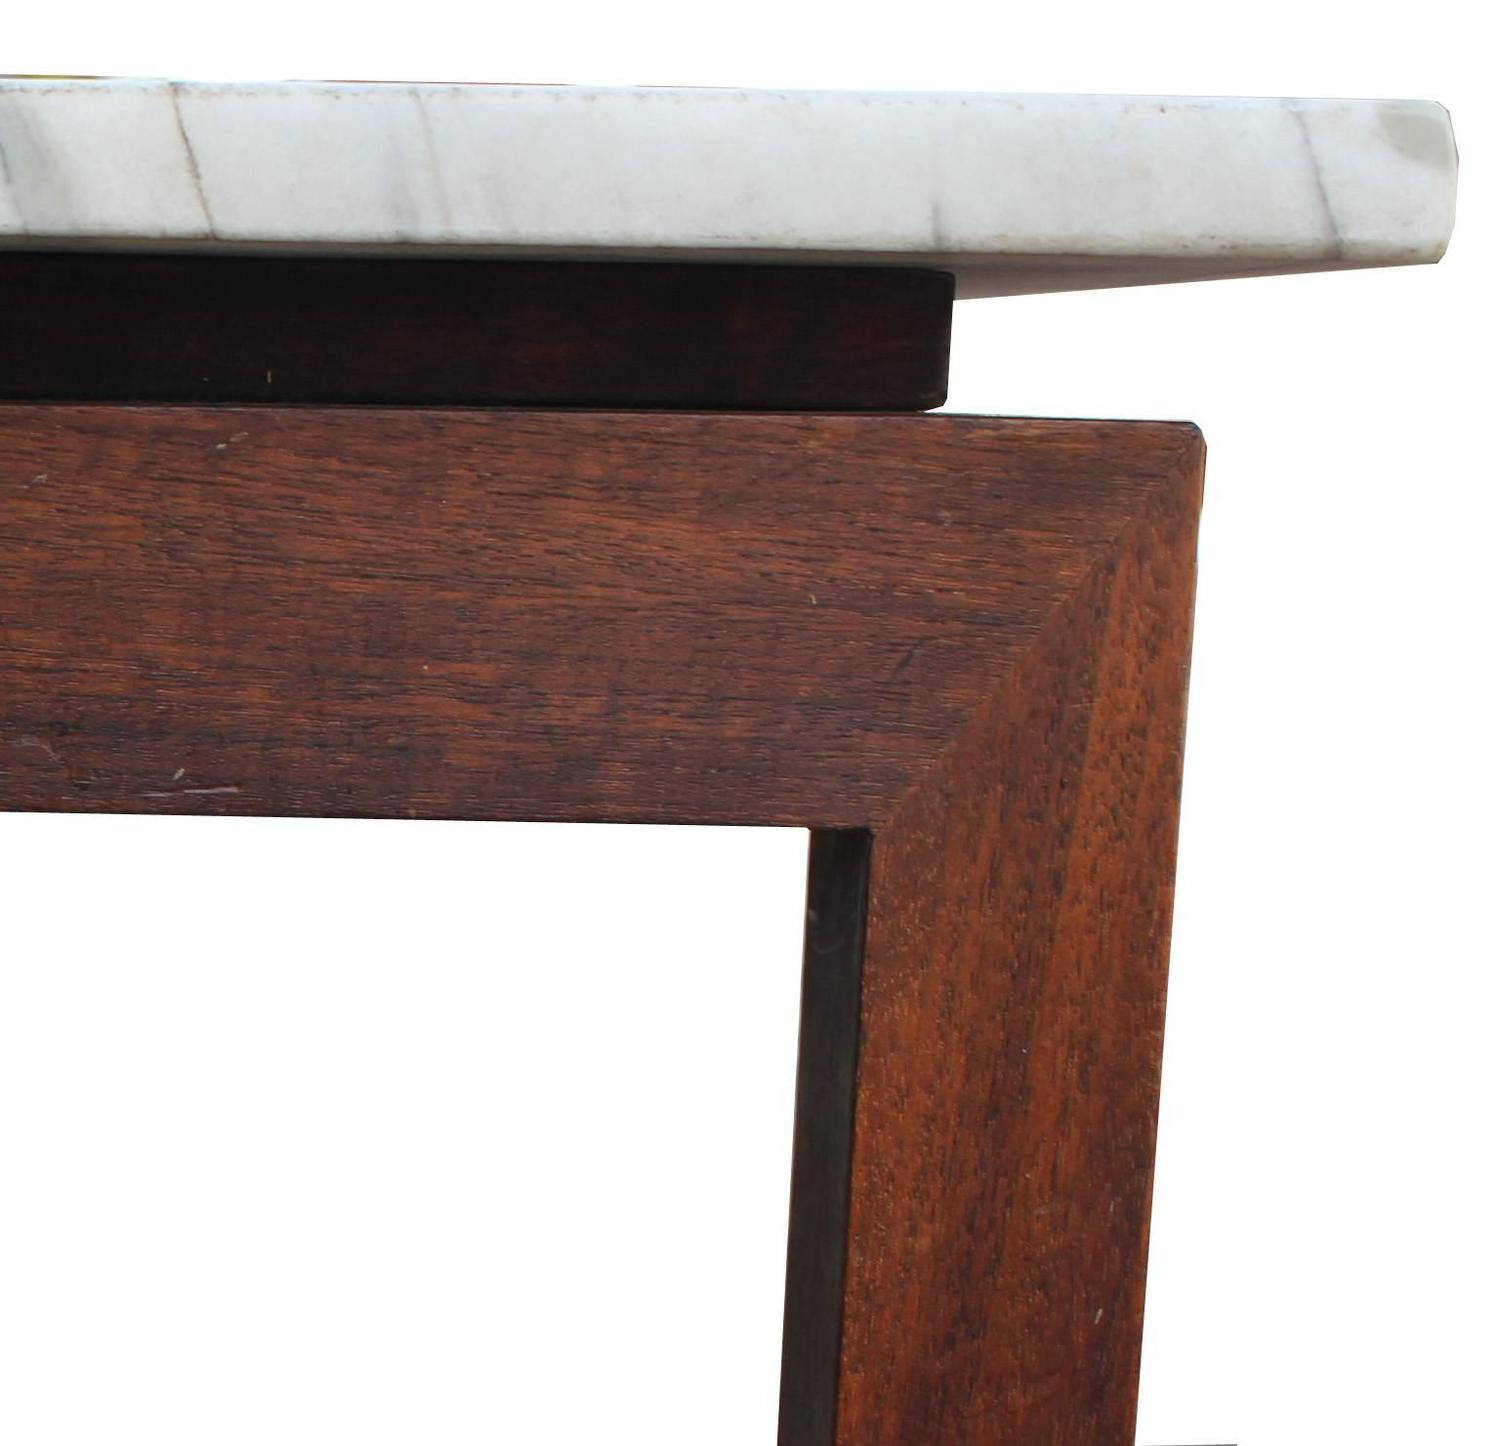 Marble Coffee Table Houston: Clean Lined Walnut And Marble Coffee Table For Sale At 1stdibs